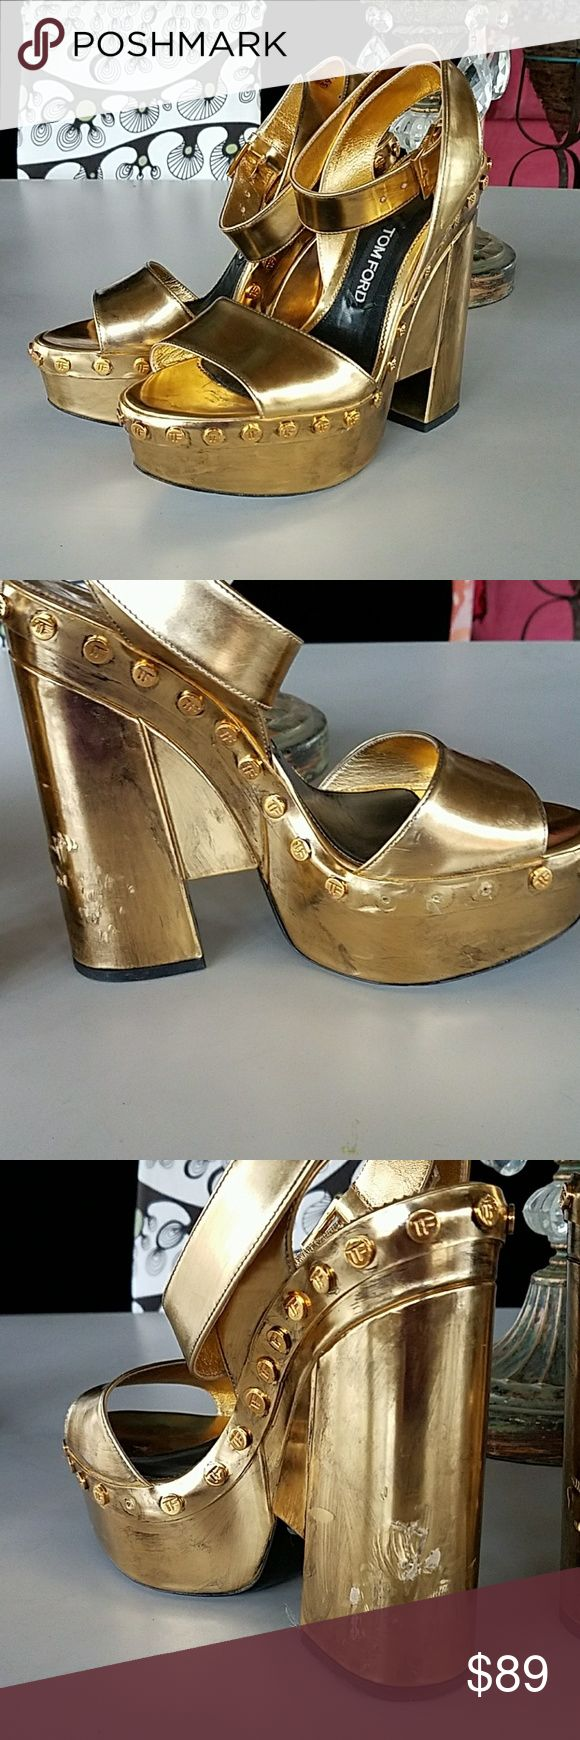 Tom Ford sz 39.5/9.5 gold platform heels *repair These are awesome rockstar heels but these need repair. If you want them, feel you know some place to fix them or can transform them/bedazzle them.. go for it ! Tom Ford Shoes Platforms